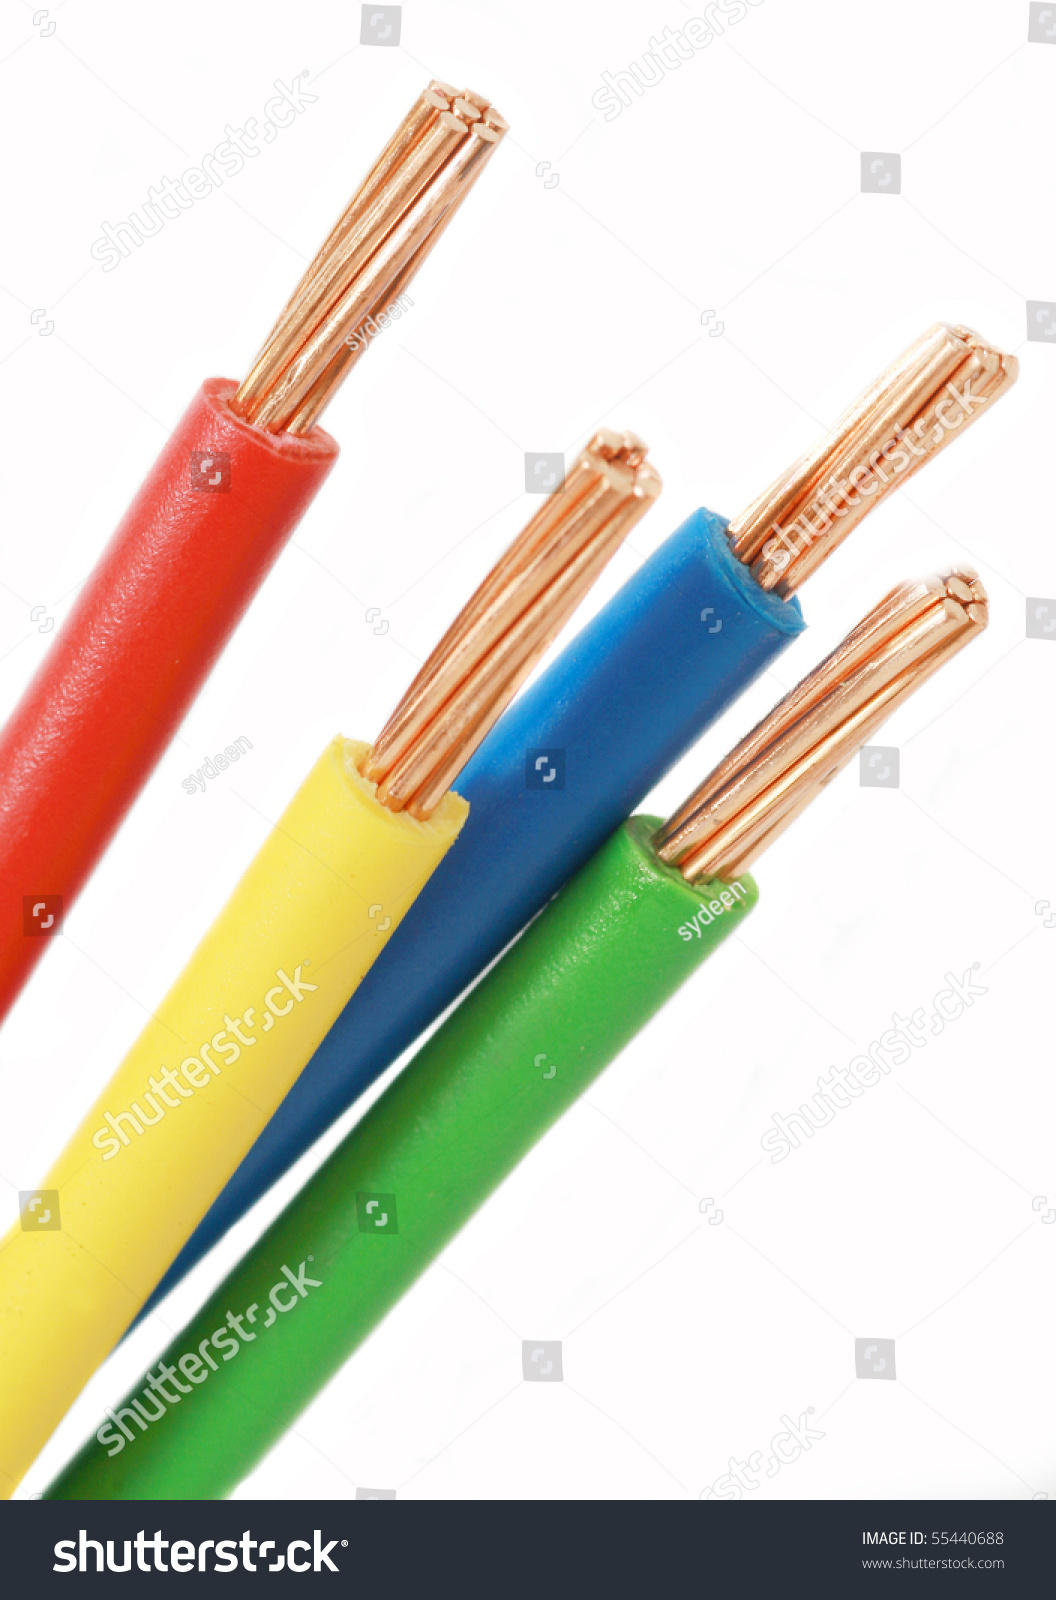 Cable Used In Electrical Wiring Systems Stock Photo